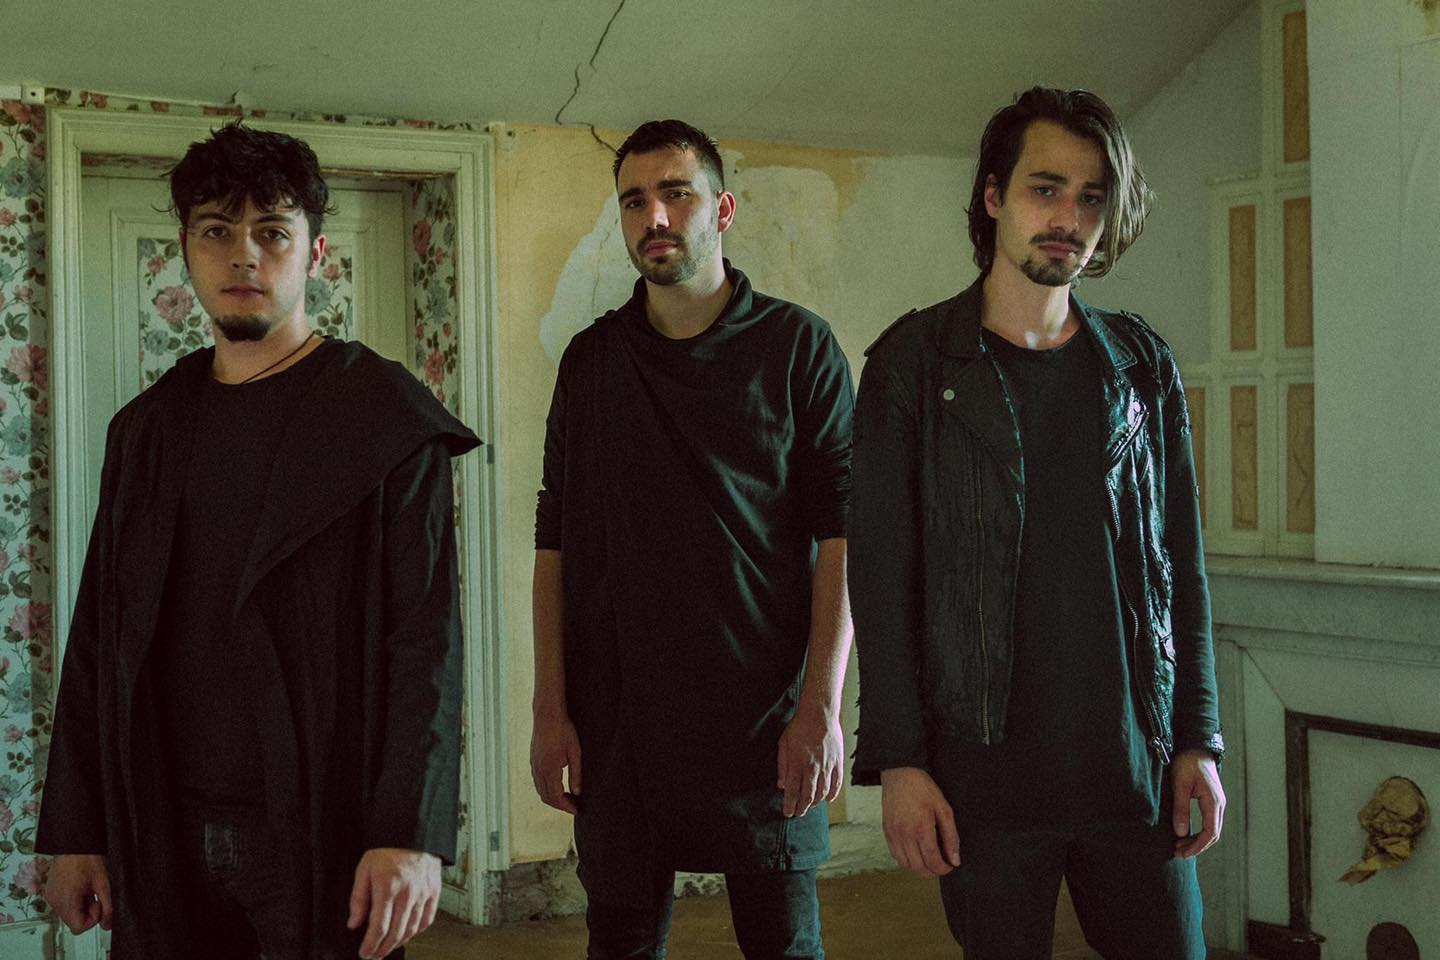 French cold wave act Divine Shade releases 4th video from 'In the Dust' EP - watch here